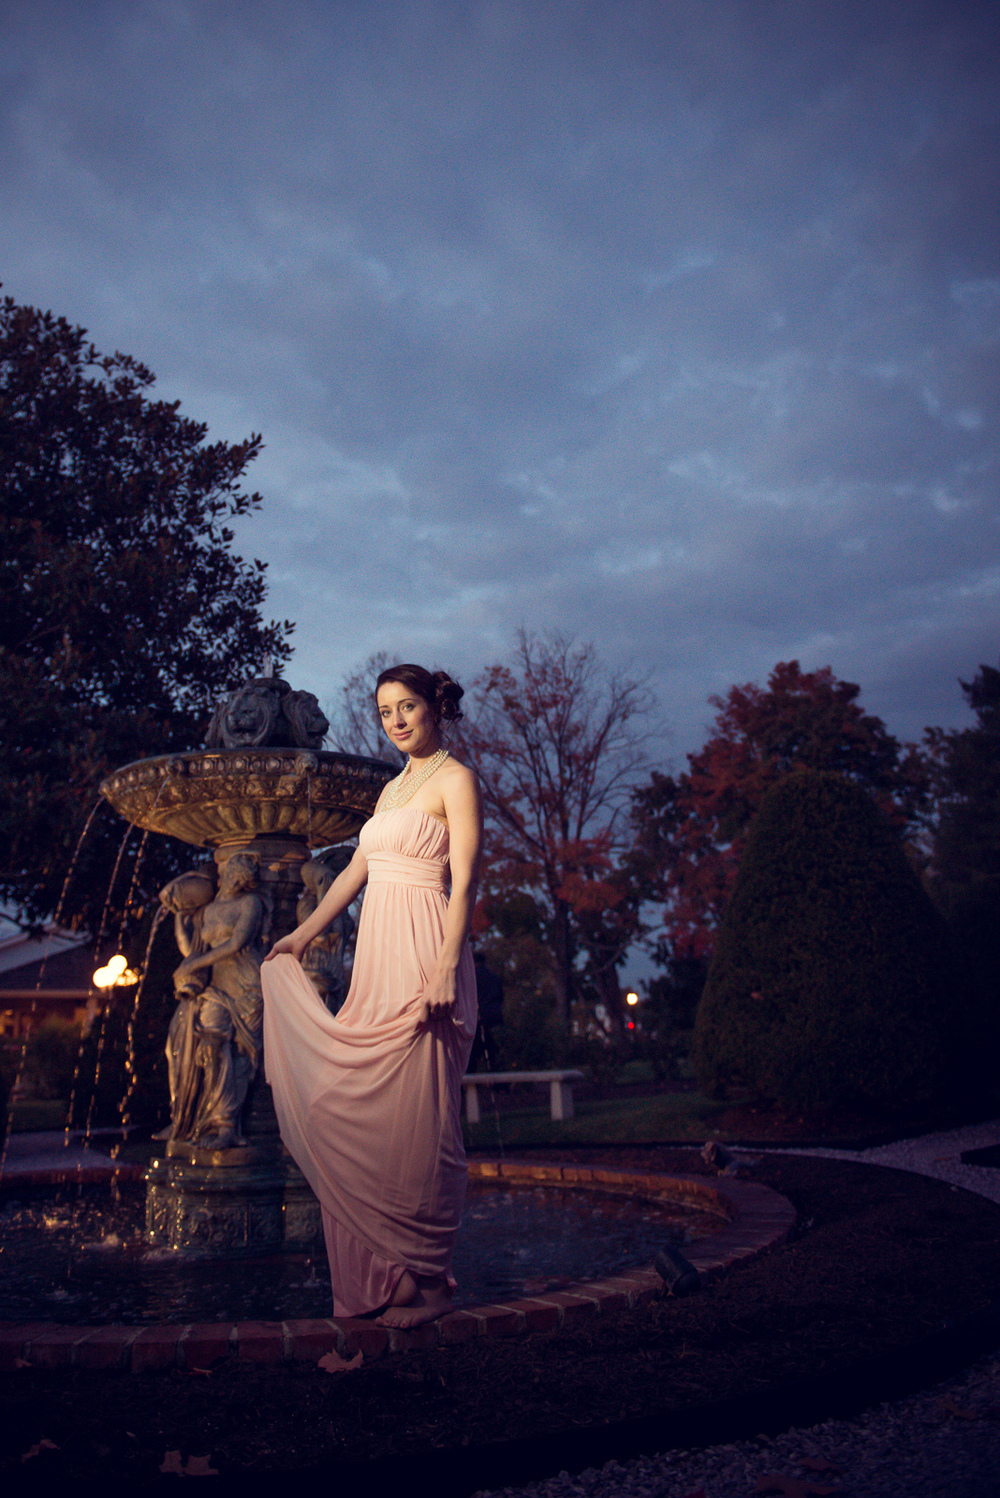 Jennifer.DiDio.Photography.Sharkey.50th.2013-210-2.jpg